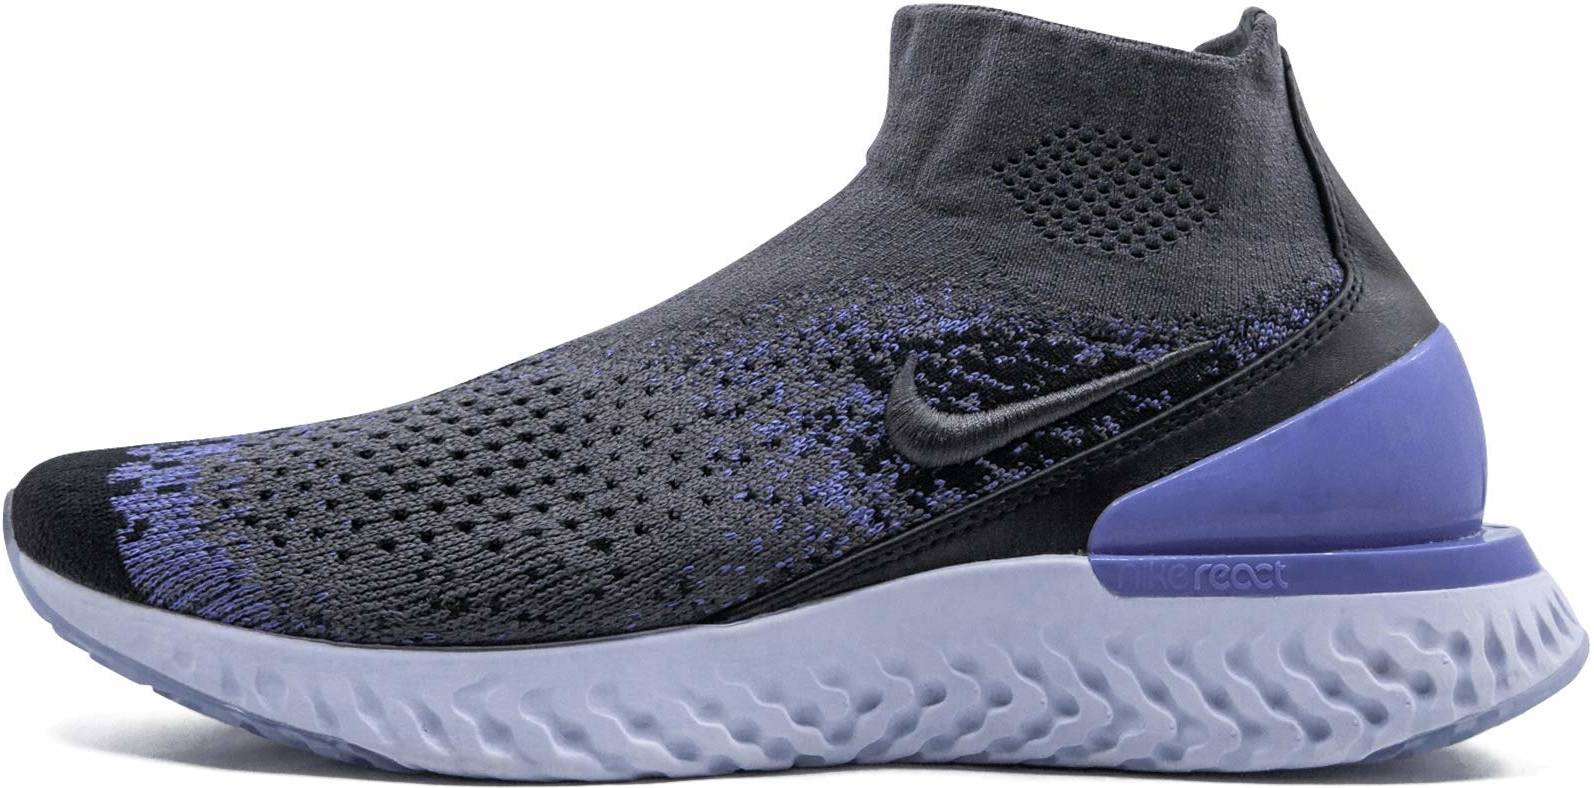 Review of Nike Rise React Flyknit